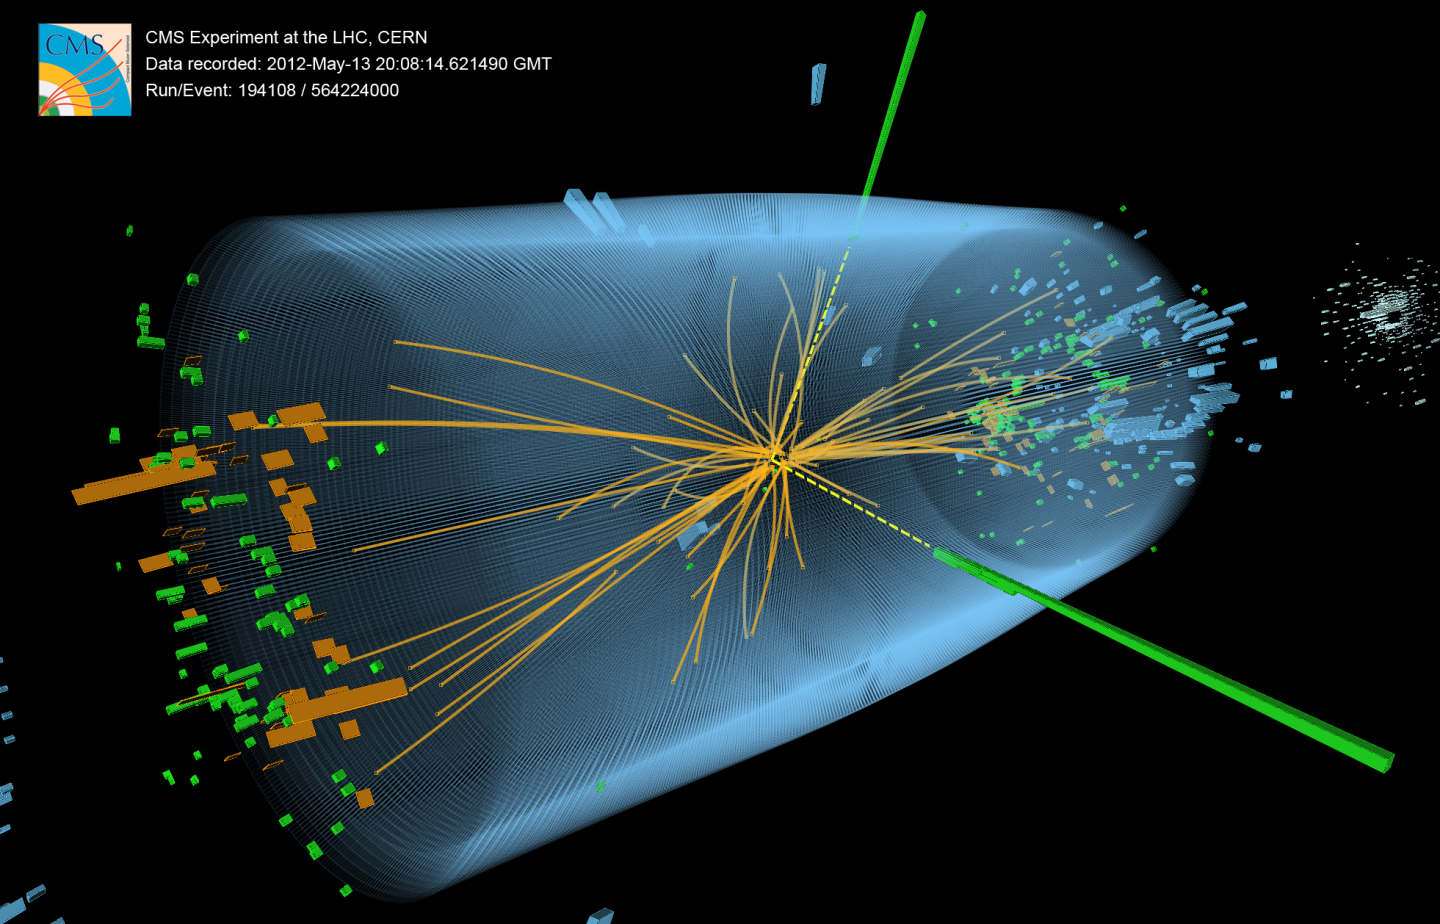 CMS Higgs Seminar (4 July 2012) : images and plots from the CMS Statement